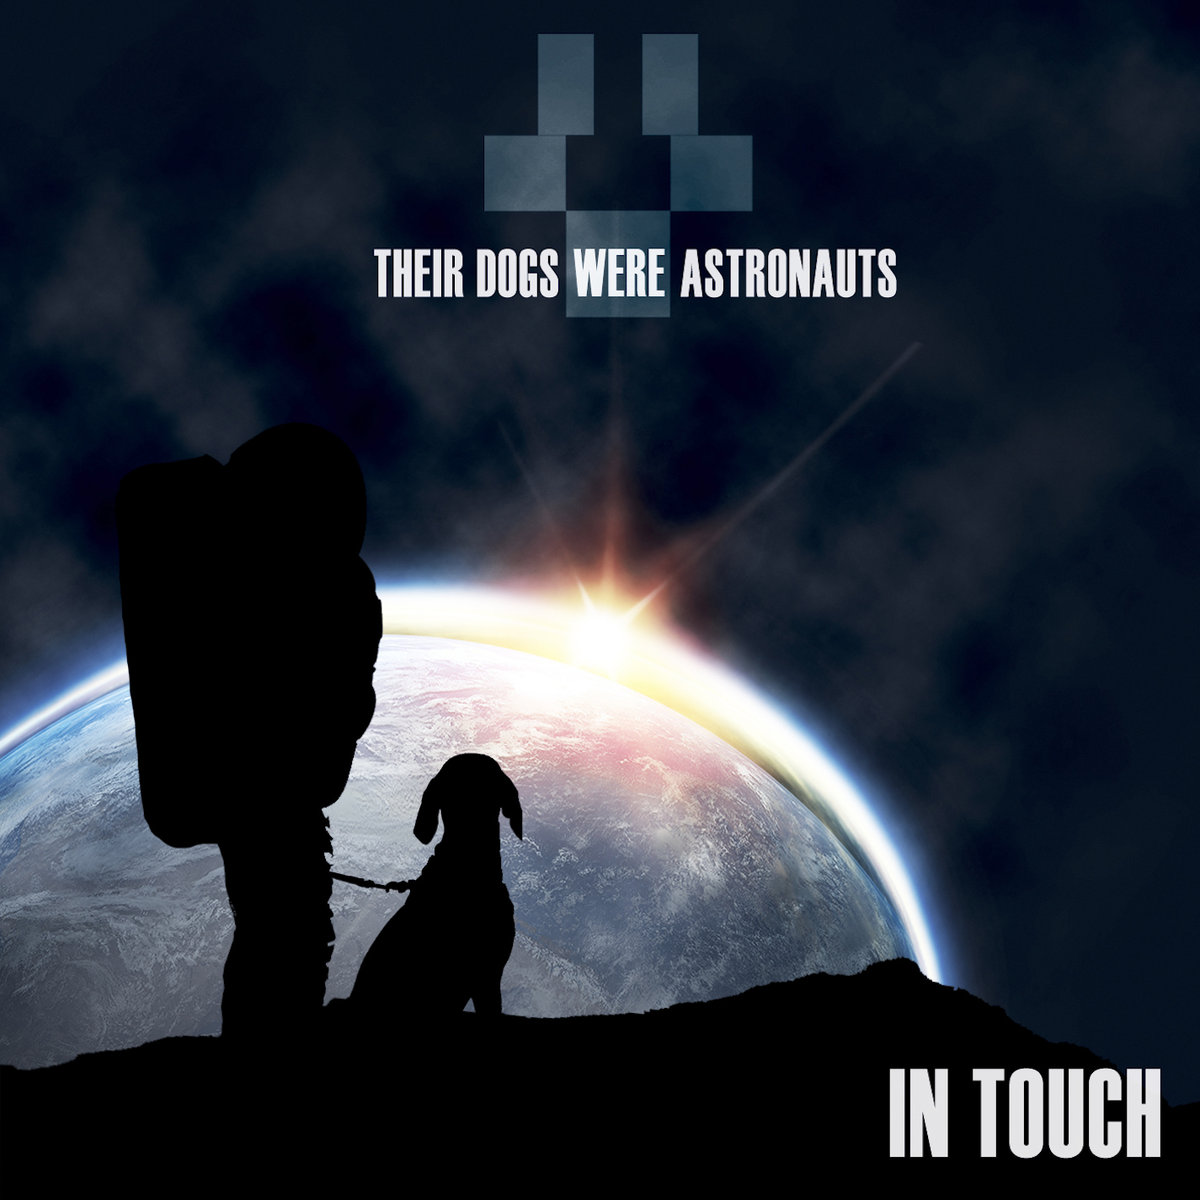 Their Dogs Were Astronauts - Differences @ 'In Touch' album (instrumental metal, metal)